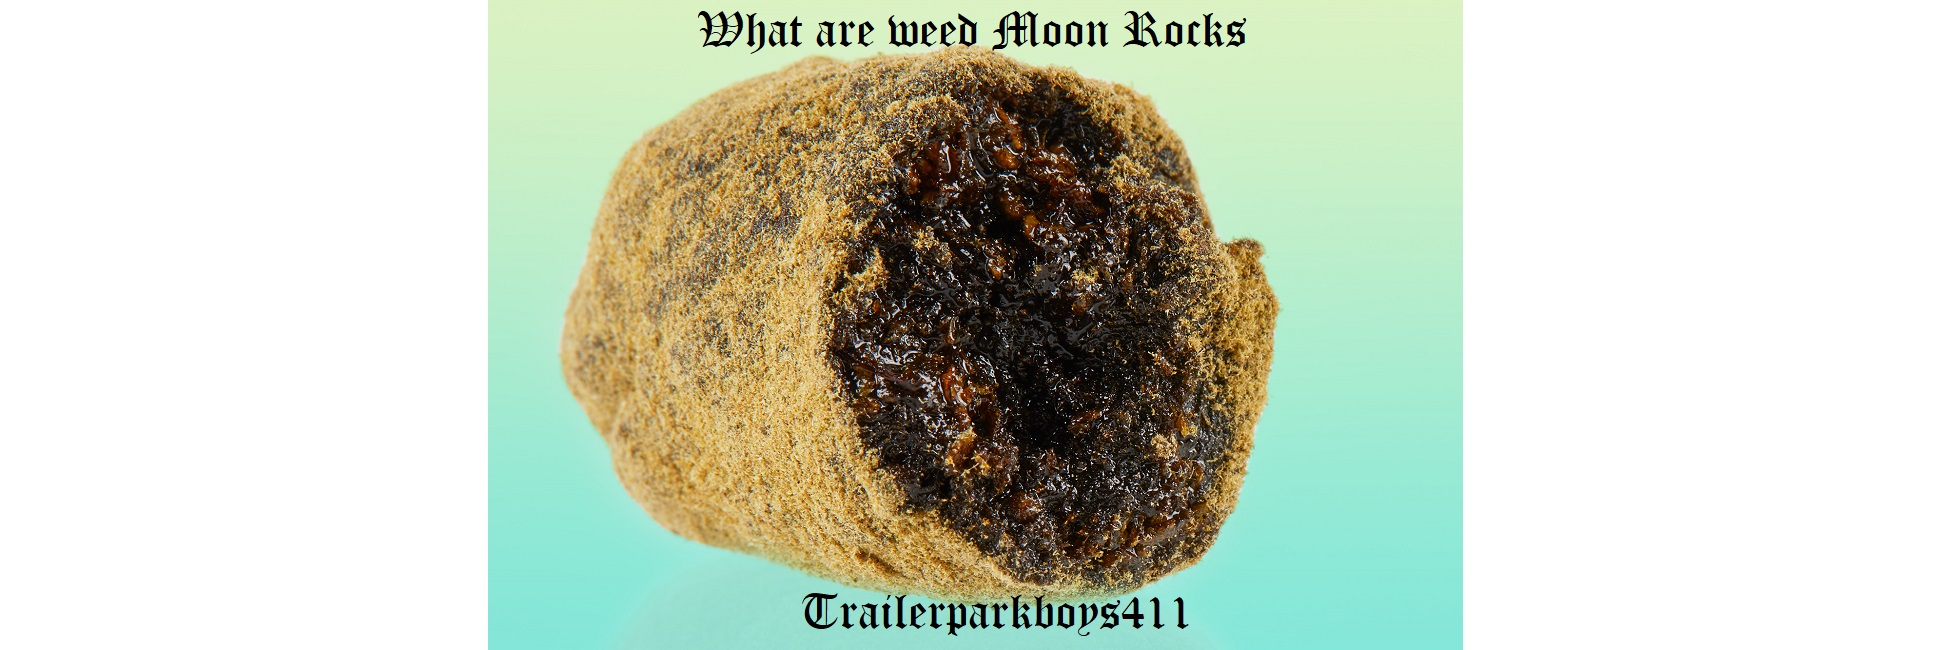 What are weed Moon Rocks